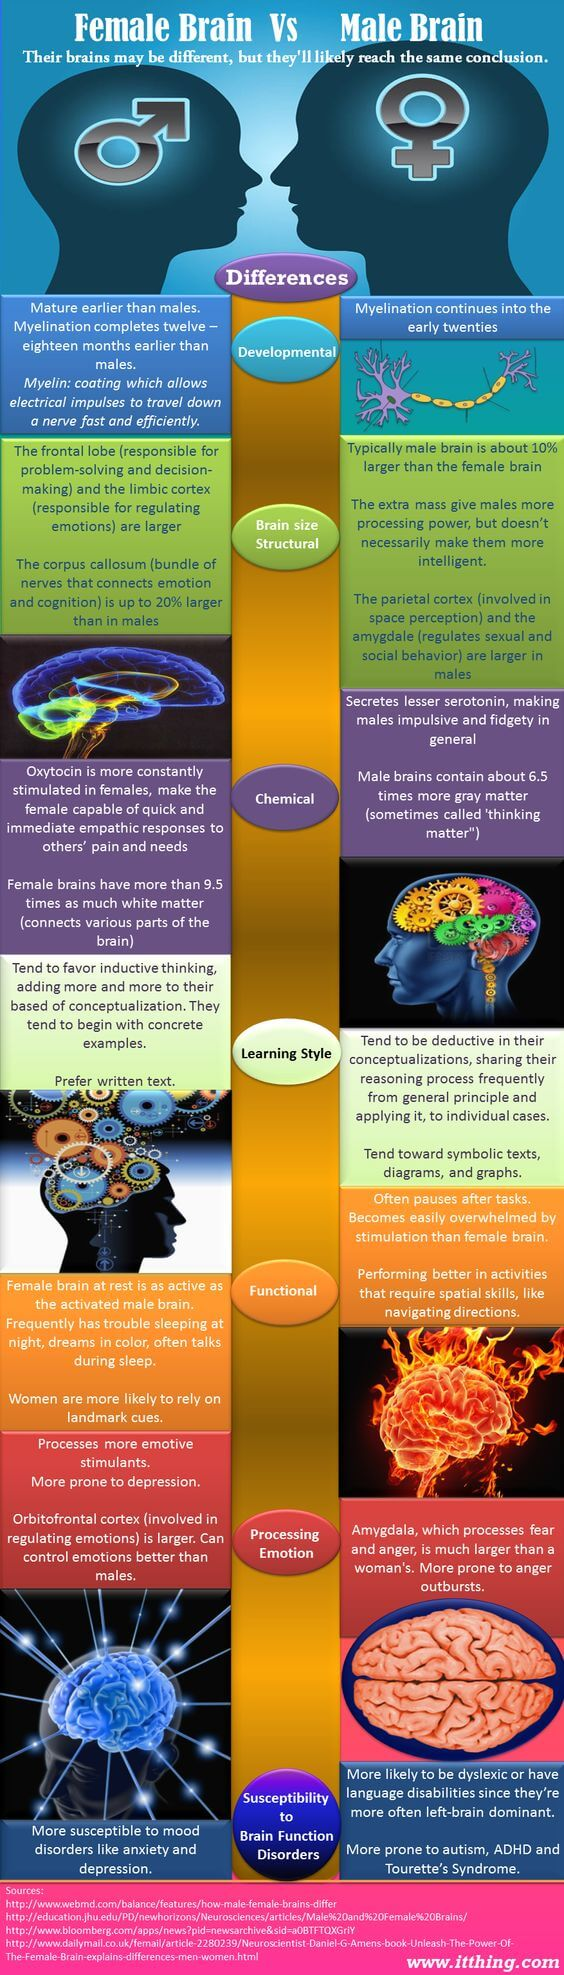 Male brain versus female brain infographic